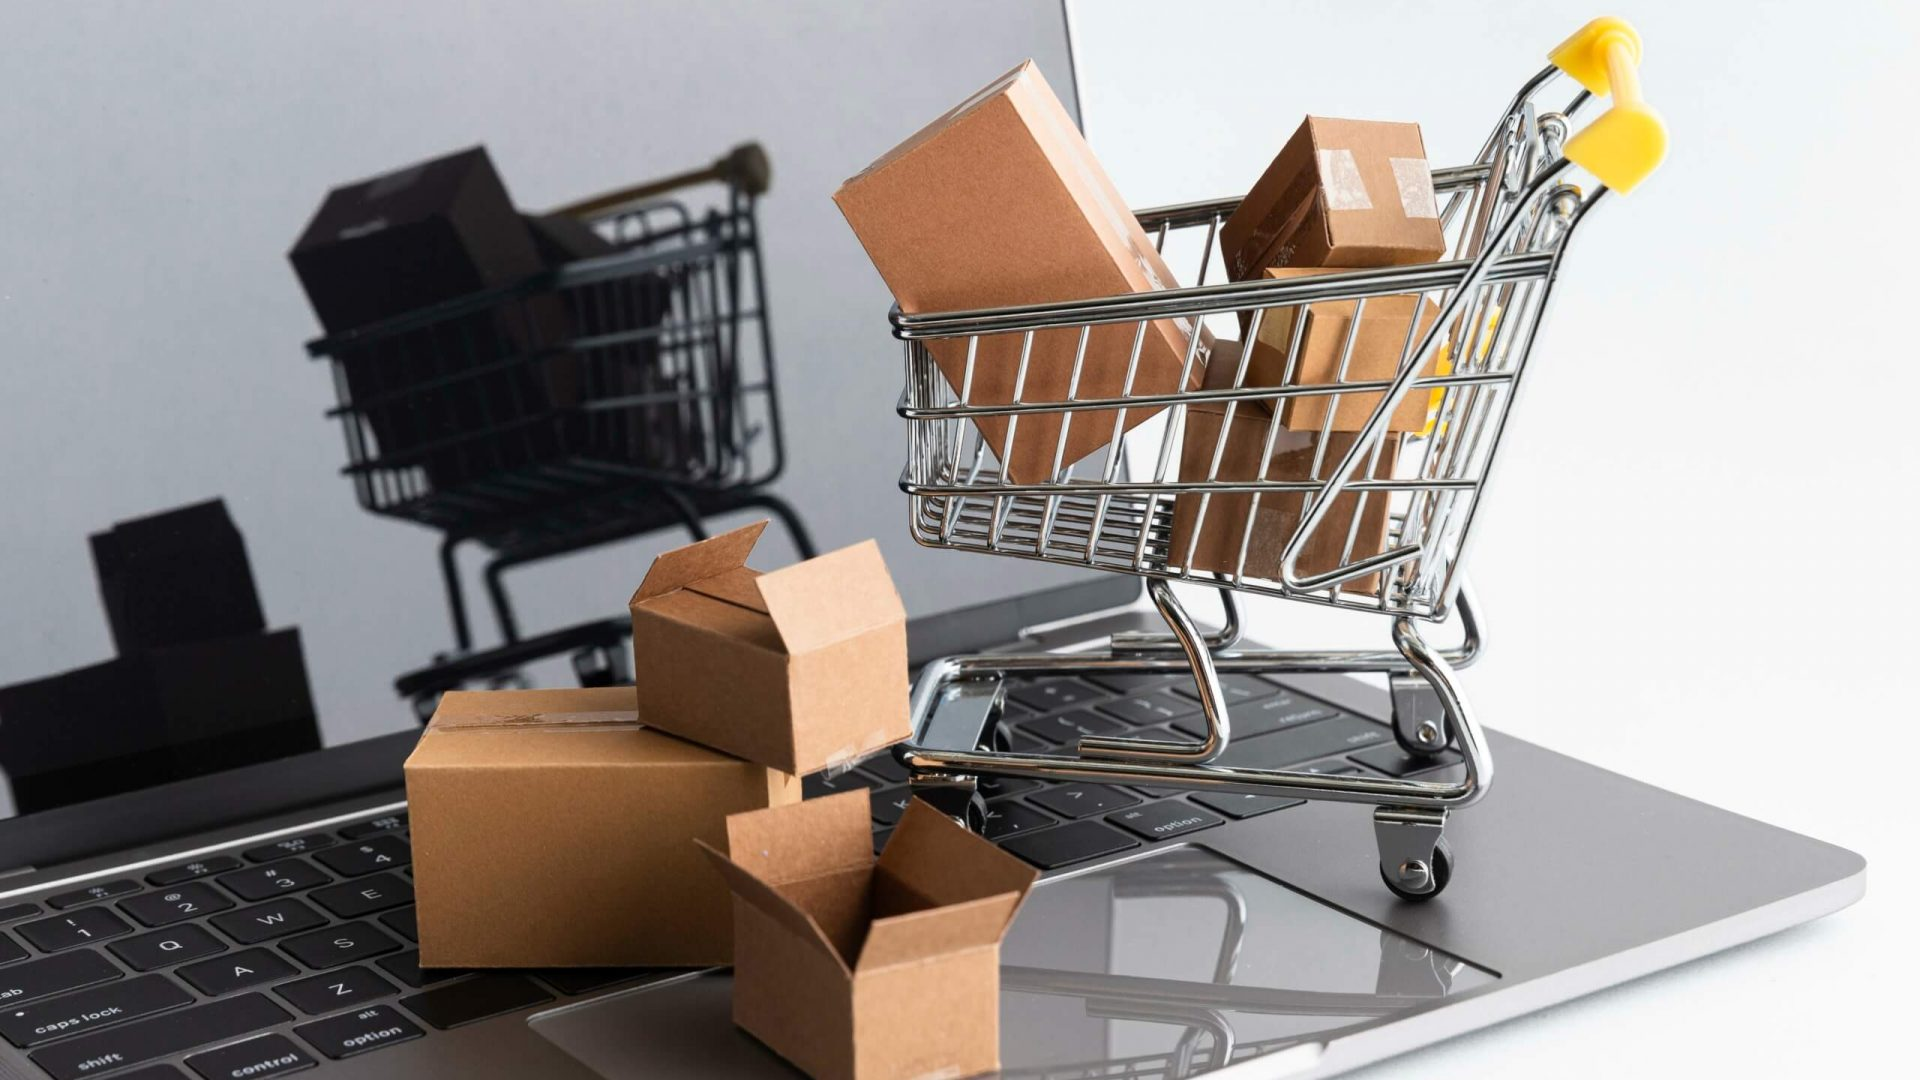 Ecommerce business – A new era for packaging